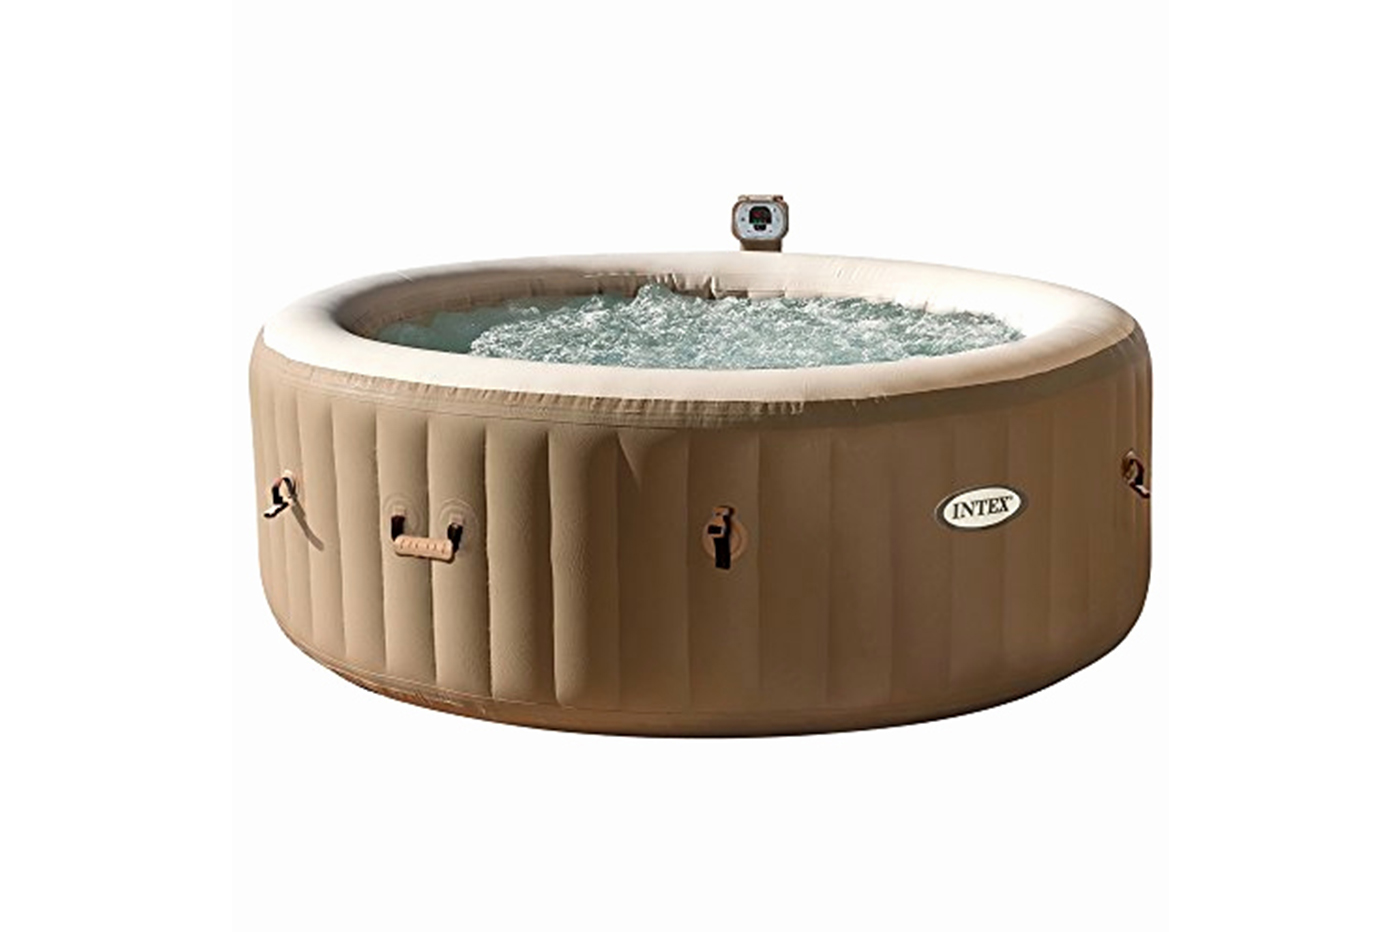 INTEX 28404 Pure spa bubble therapy 196x71 cm 120 getti idromassaggio 4 posti